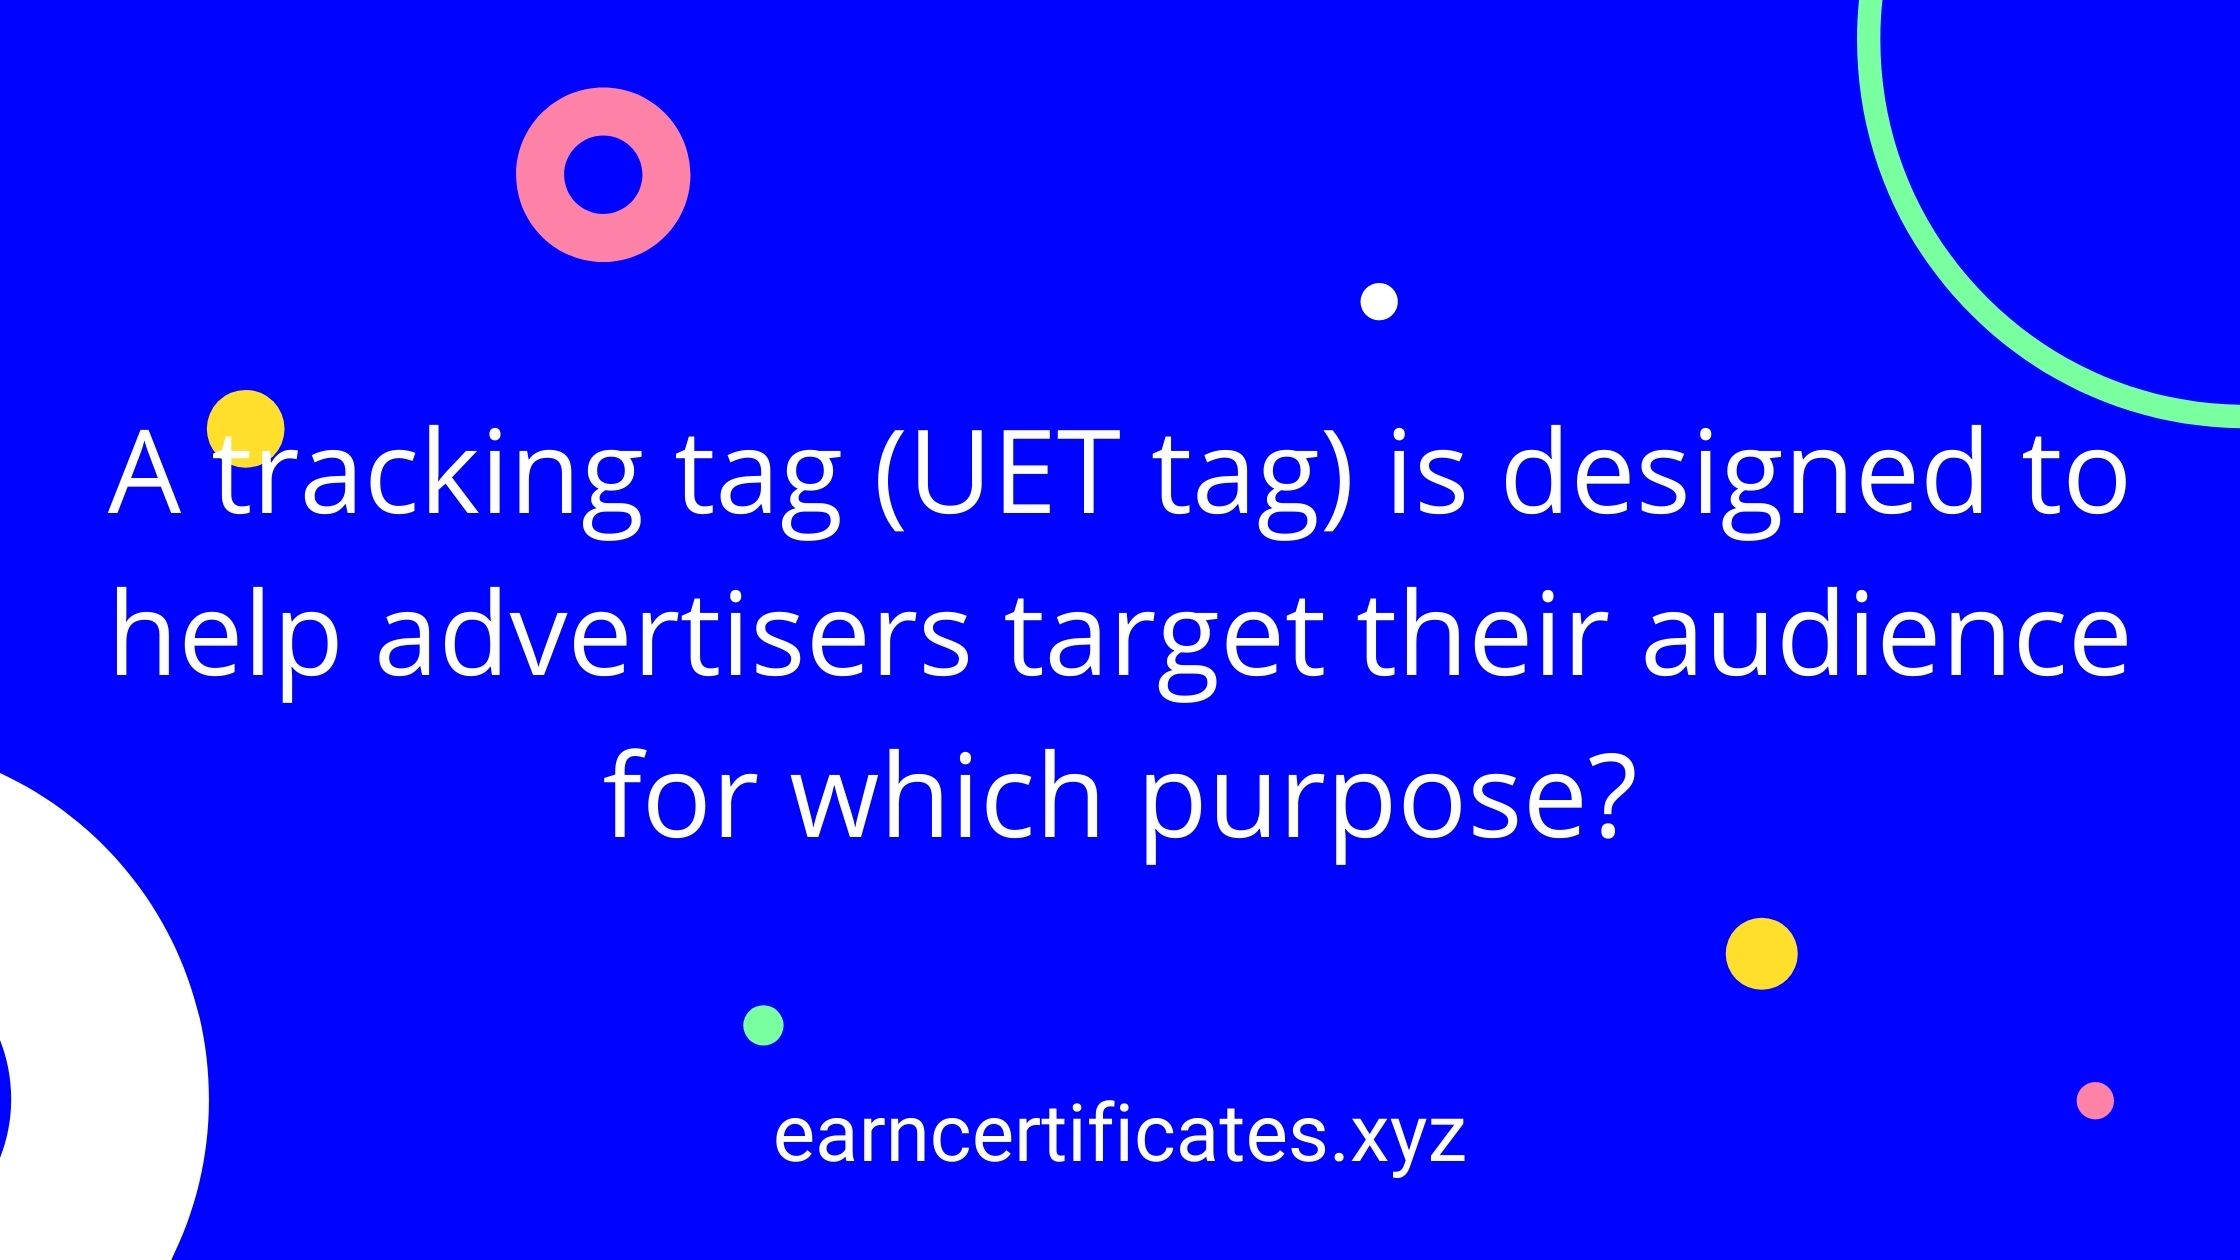 A tracking tag (UET tag) is designed to help advertisers target their audience for which purpose?